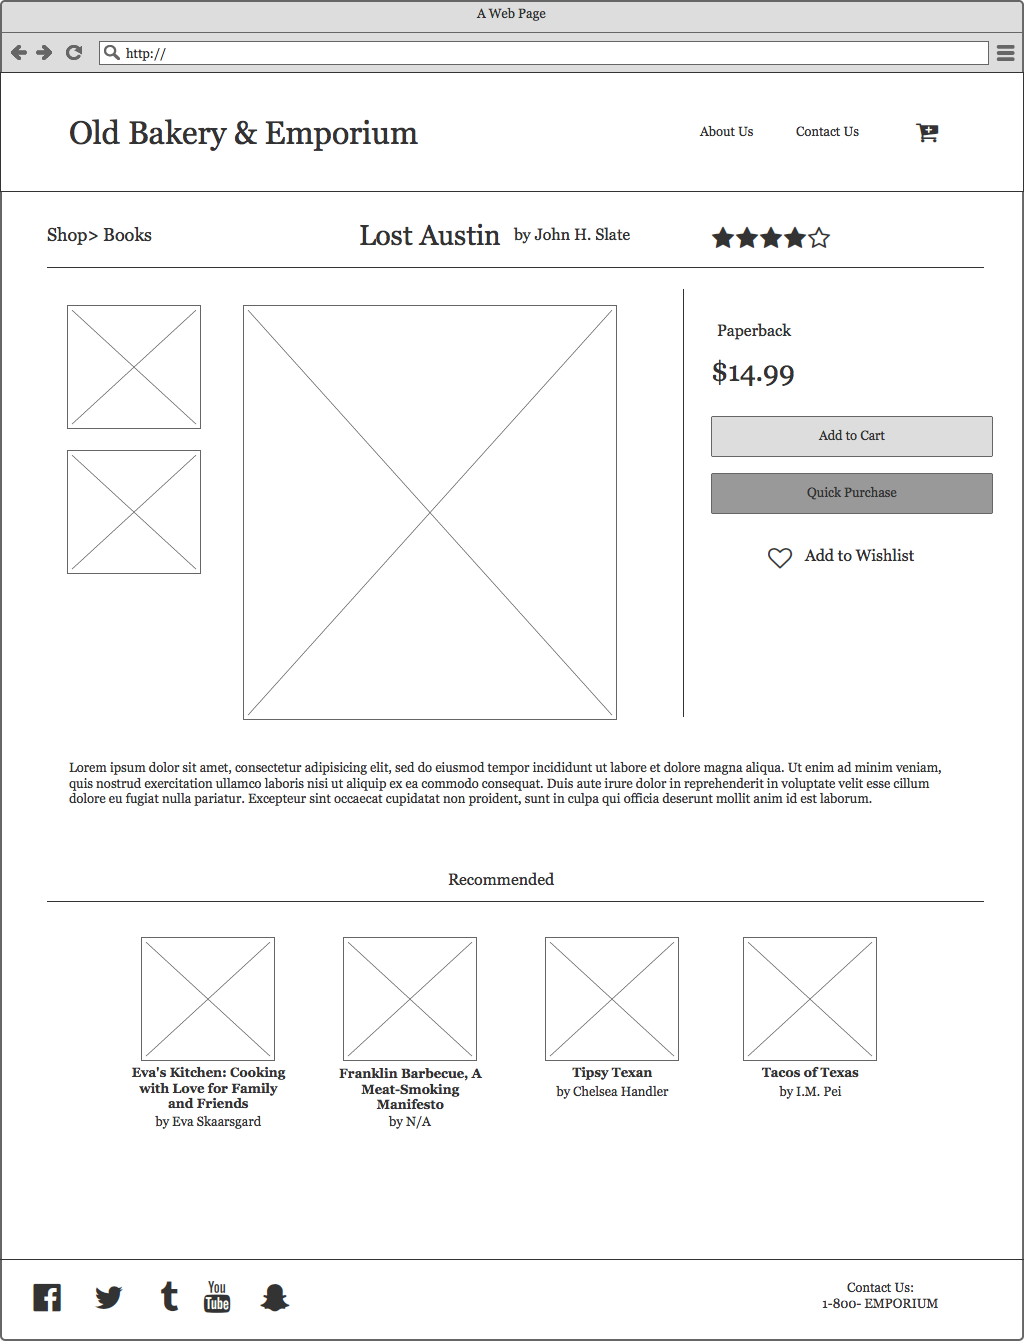 First iteration of the product page.